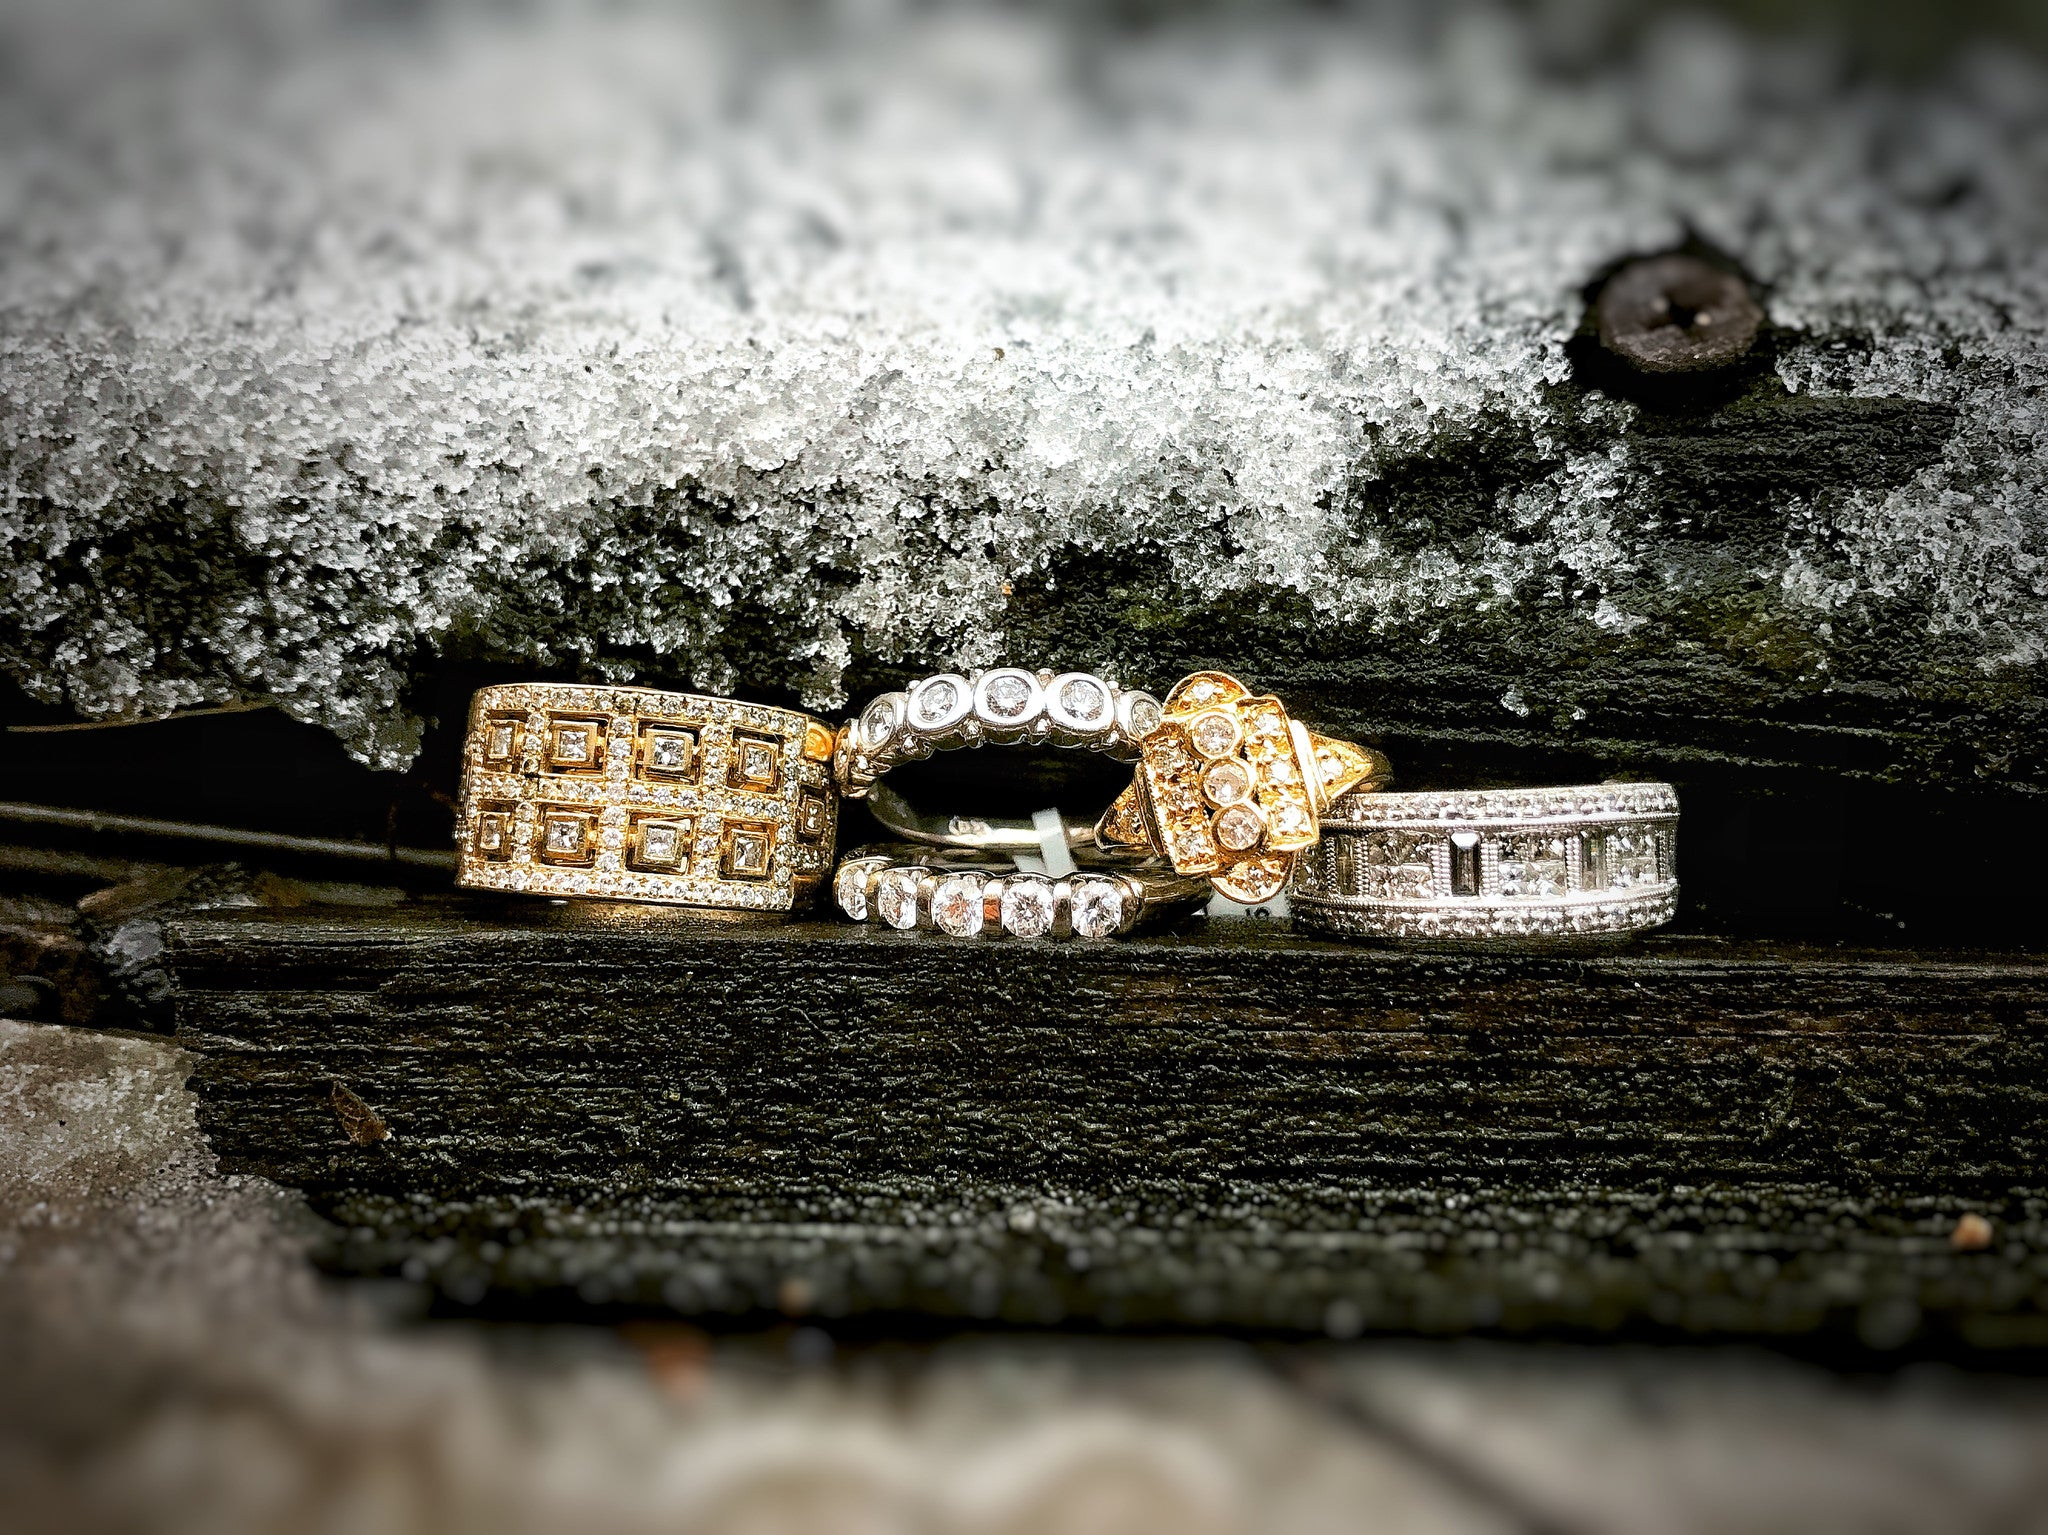 Antique Jewelry Ring Stack in Snow